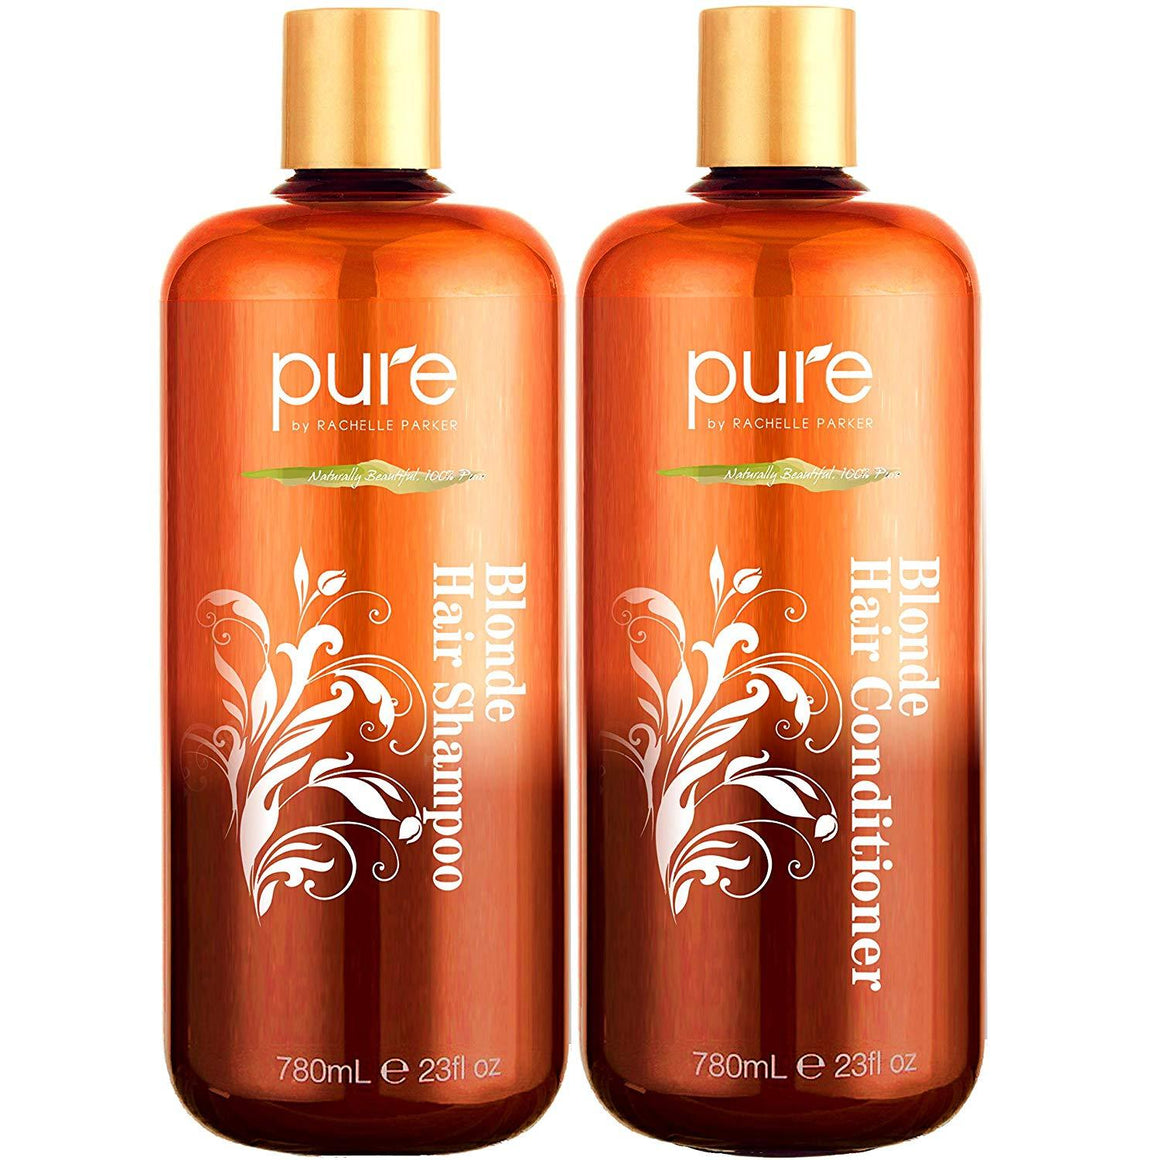 Shampoo and Conditioner for Blonde Hair.